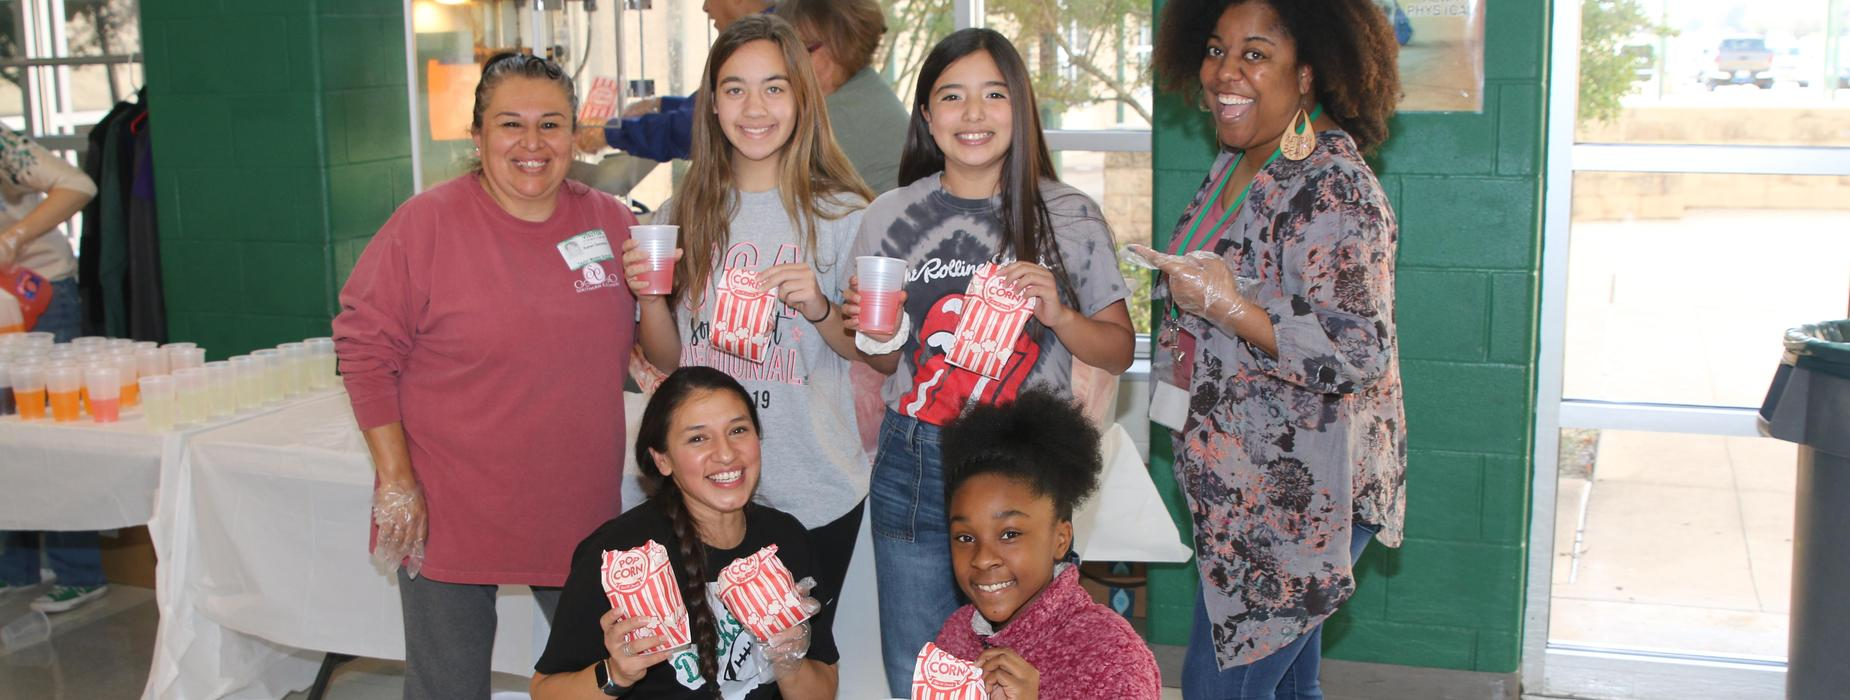 Popcorn party at middle school